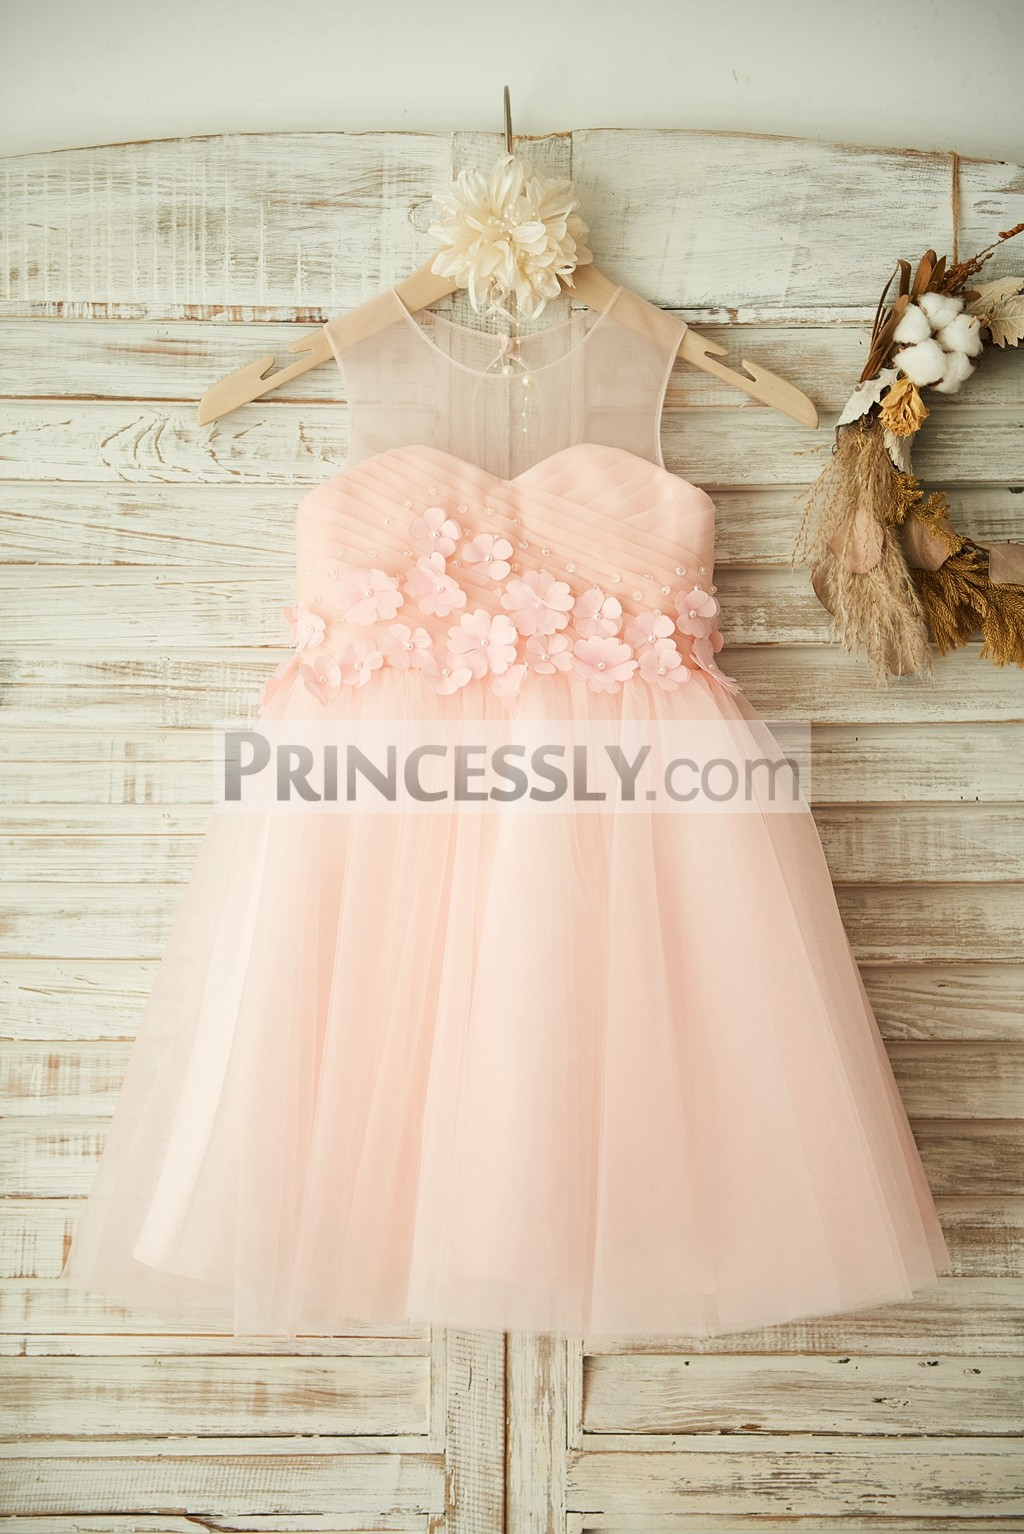 Pink Sheer Beads 3D Flowers Cross Pleated TUTU Tulle Wedding Flower Girl Dress